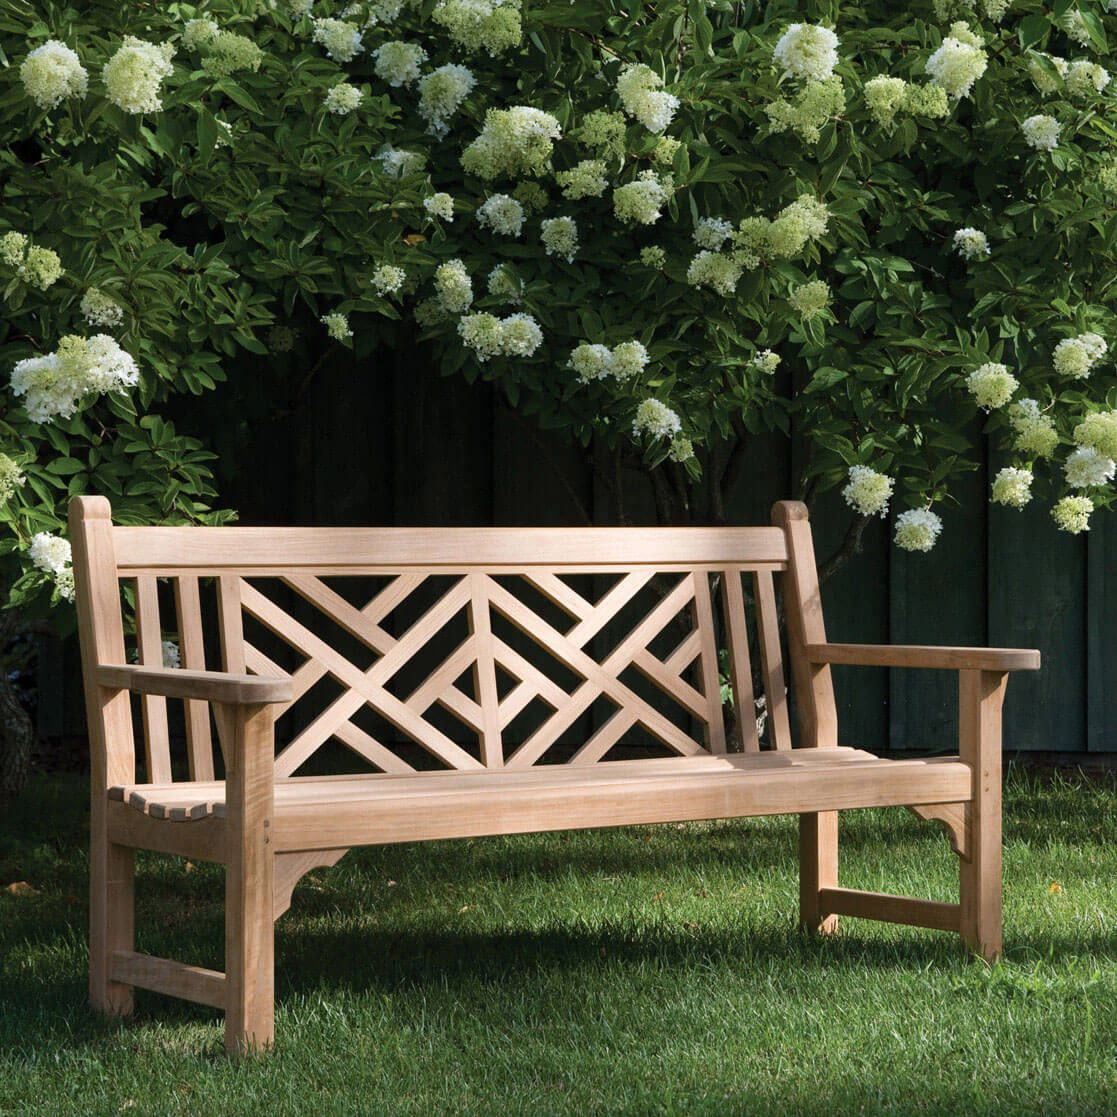 Kingsley Bate Chippendale Teak BenchKingsley Bate Teak Chippendale Bench   Kingsley  Bate Combines The Delicacy Of Chinese Latticework And The Durability Of ...